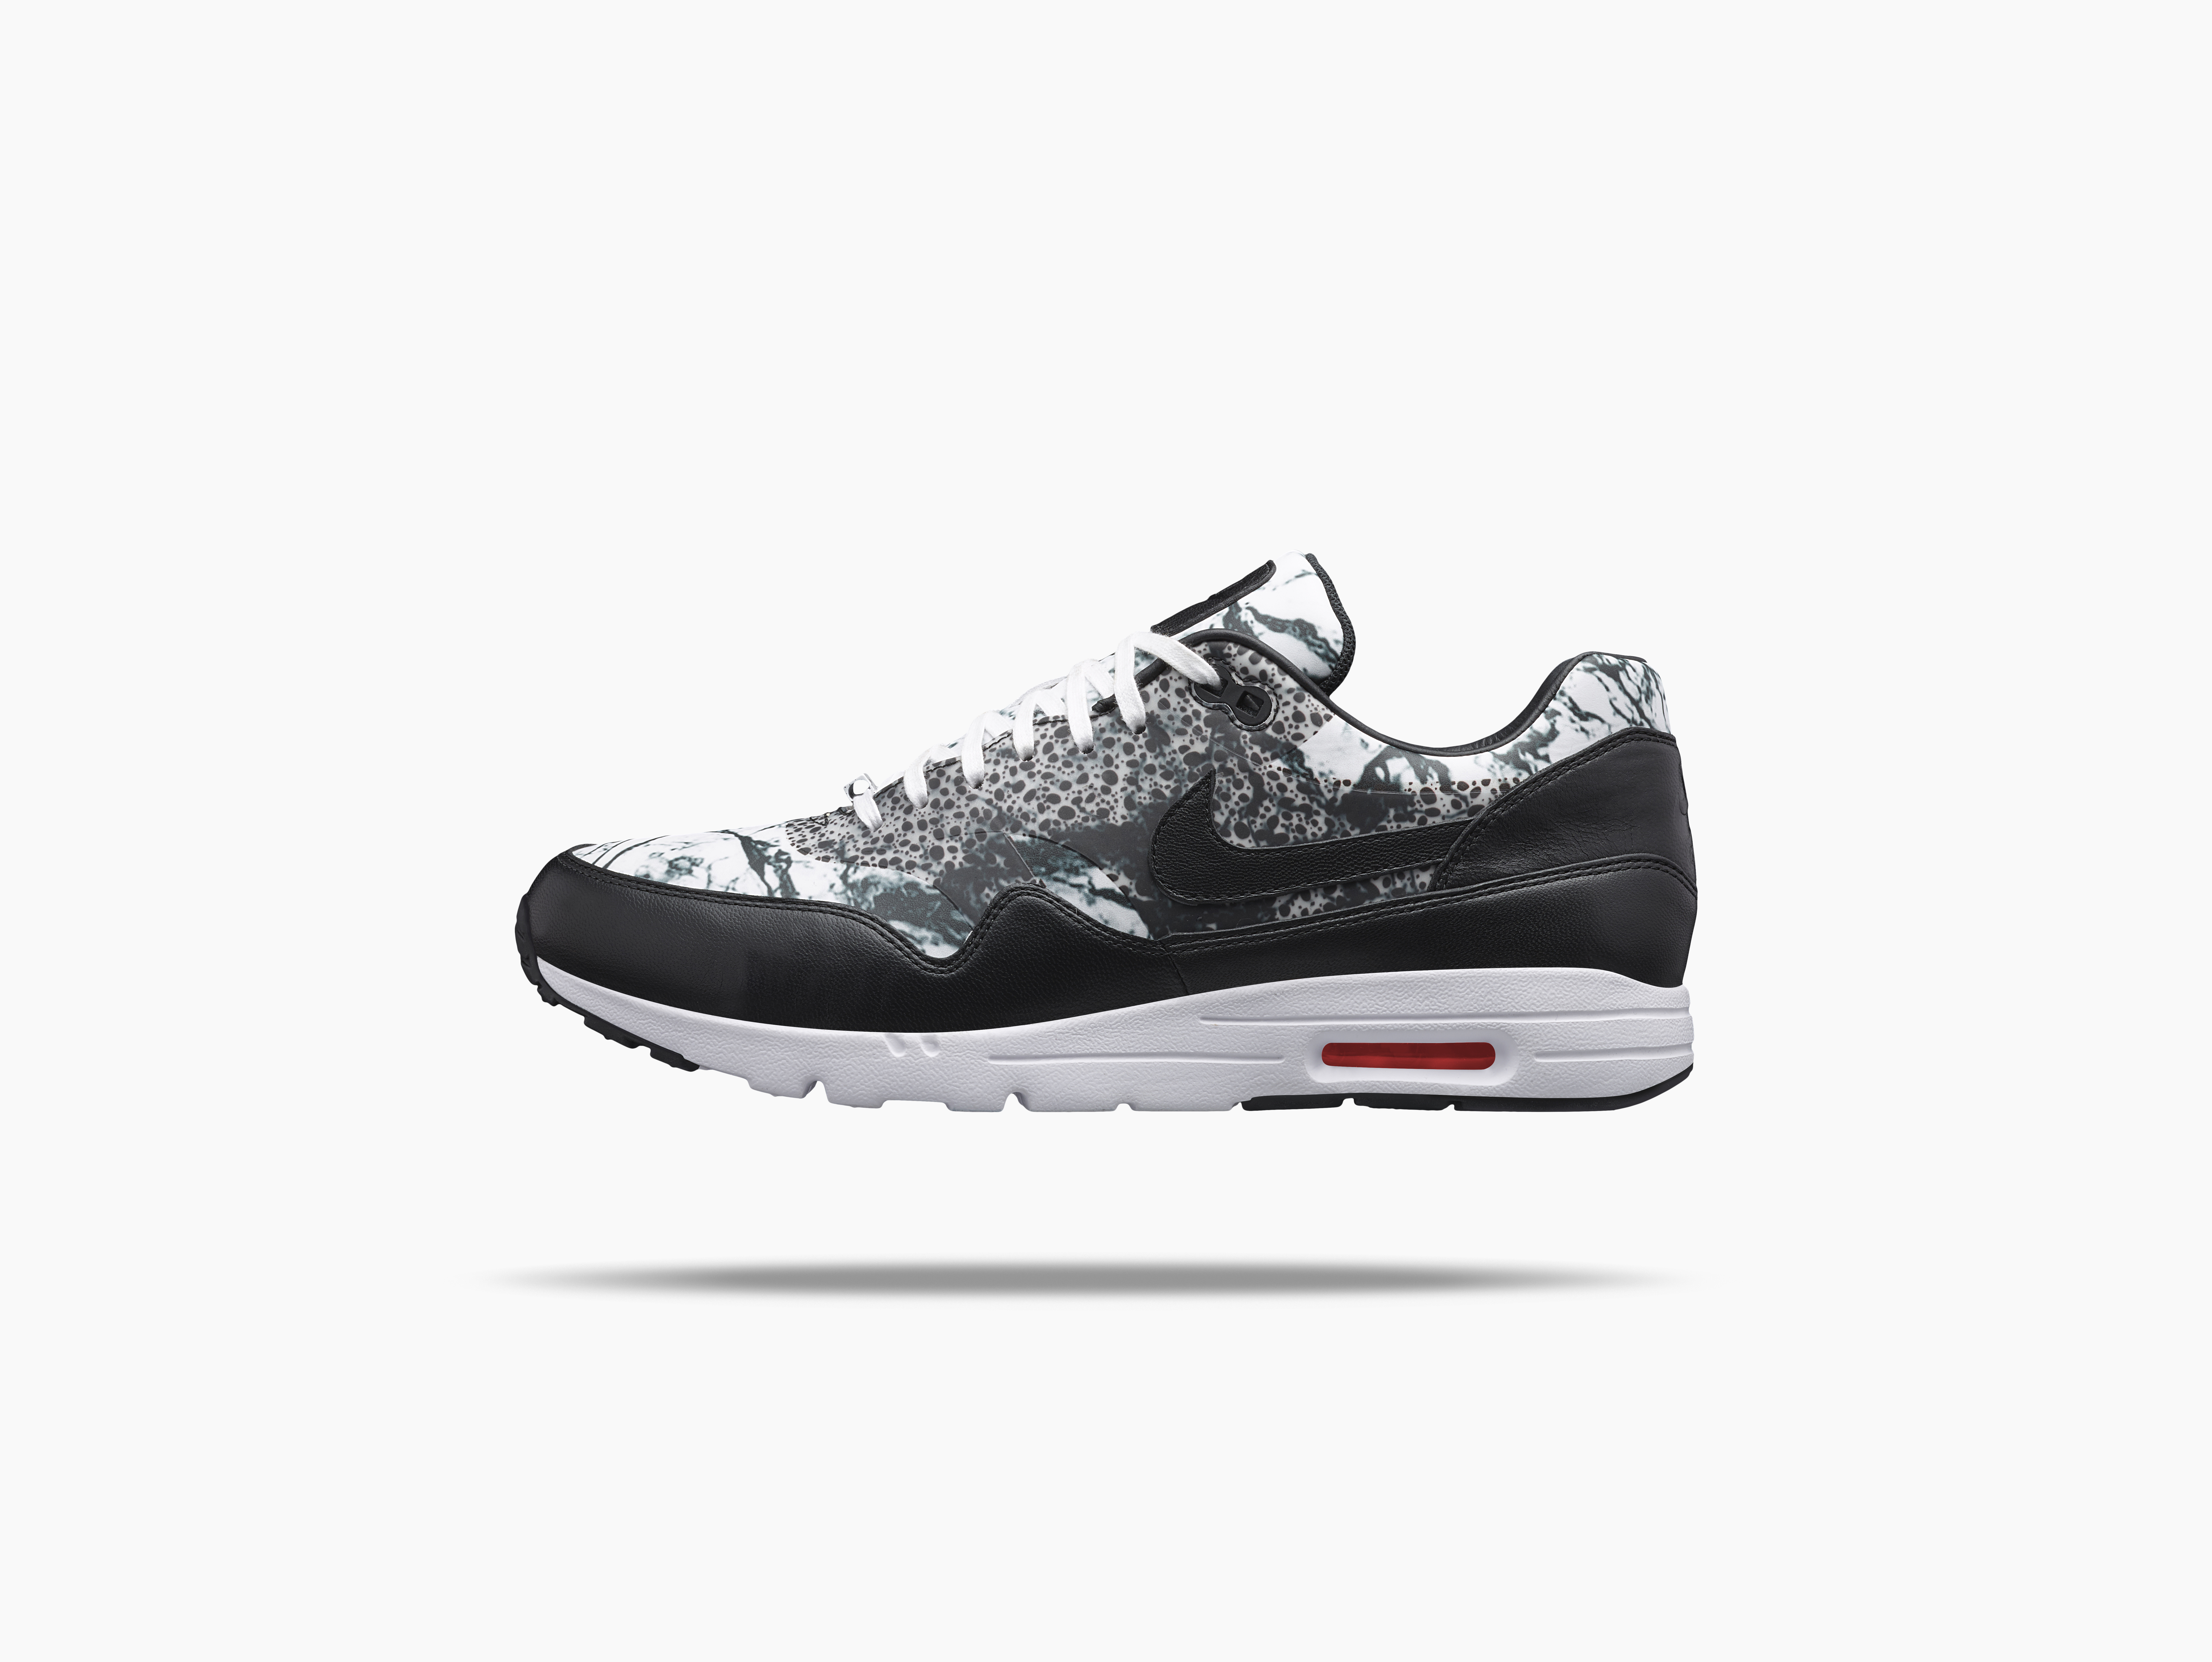 cheaper a4032 14560 ... NikeCourt Air Max 1 Ultra 3 45247 NikeCourt Air Max 1 Ultra 2 45205  NikeCourt Air Max 1 Ultra 4 45207 NikeCourt Air Max 1 Ultra 1 45246 ...